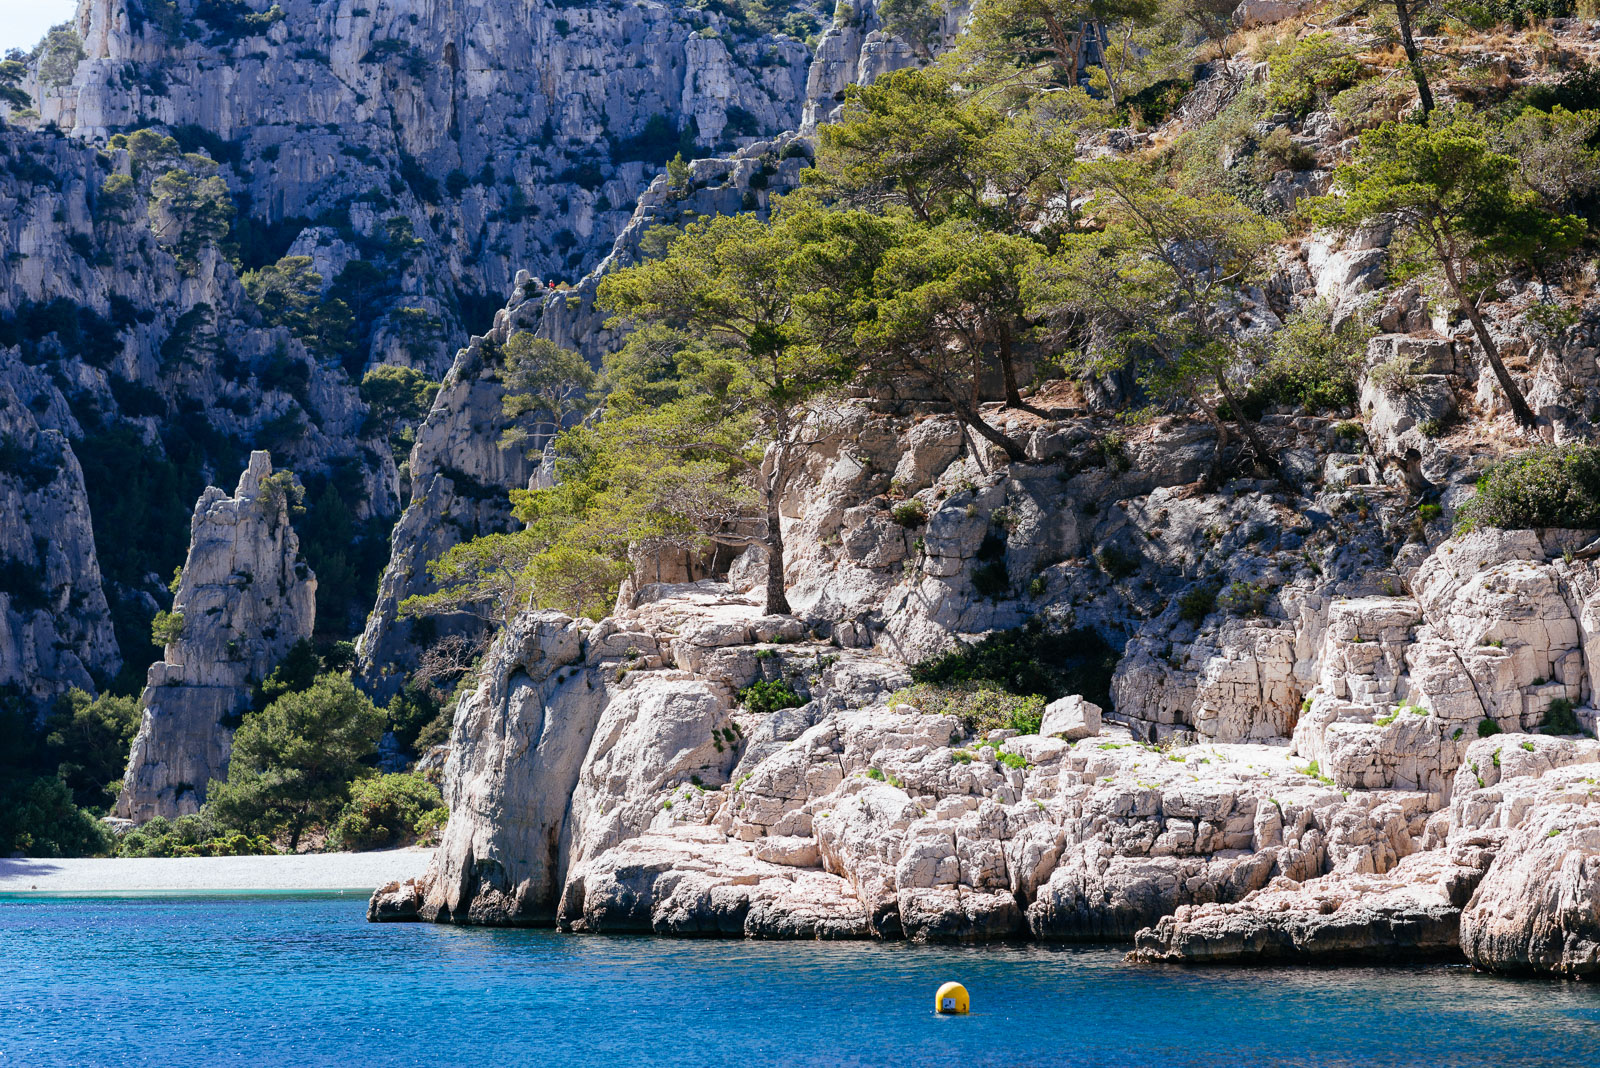 Wine and sailboat, calanque